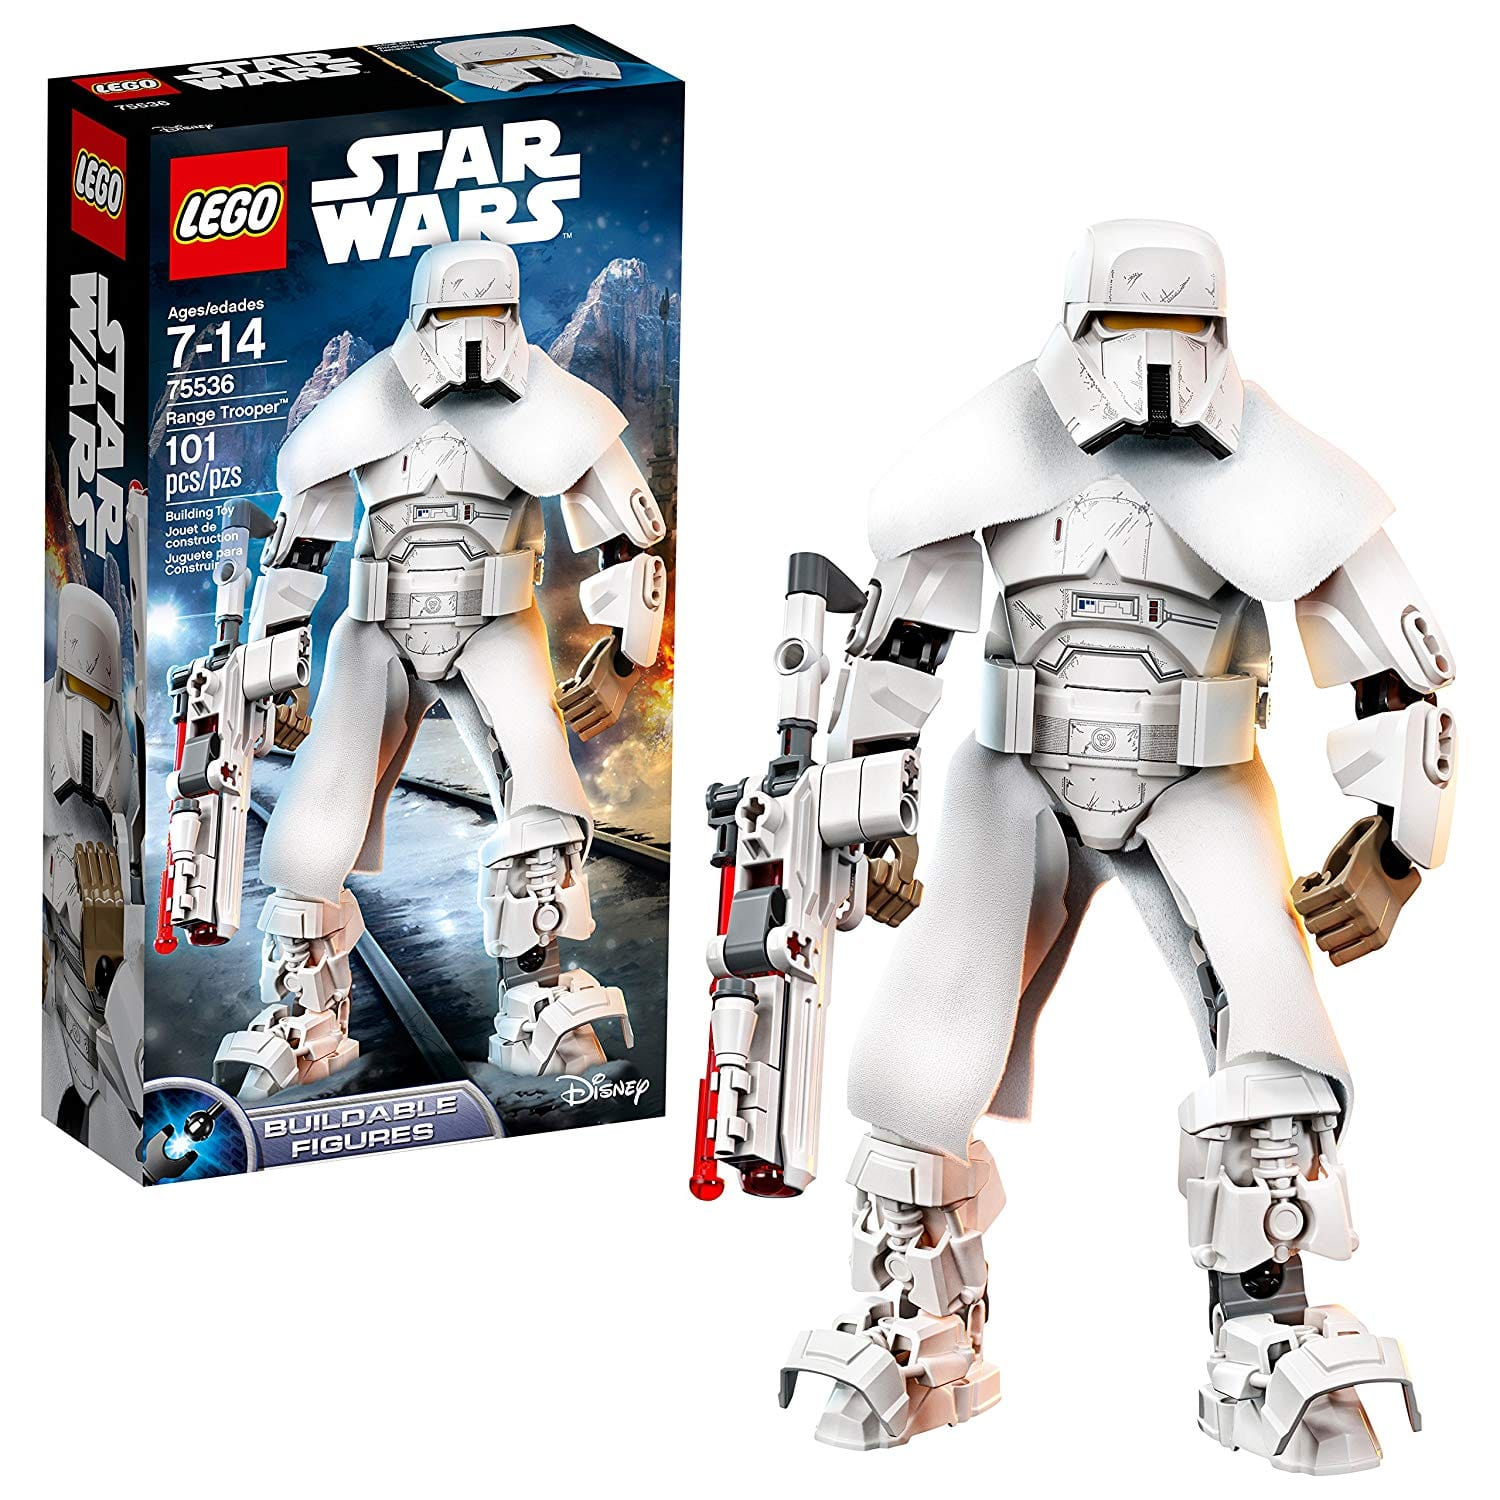 Lego #75536 Range Trooper buildable figure $13.45